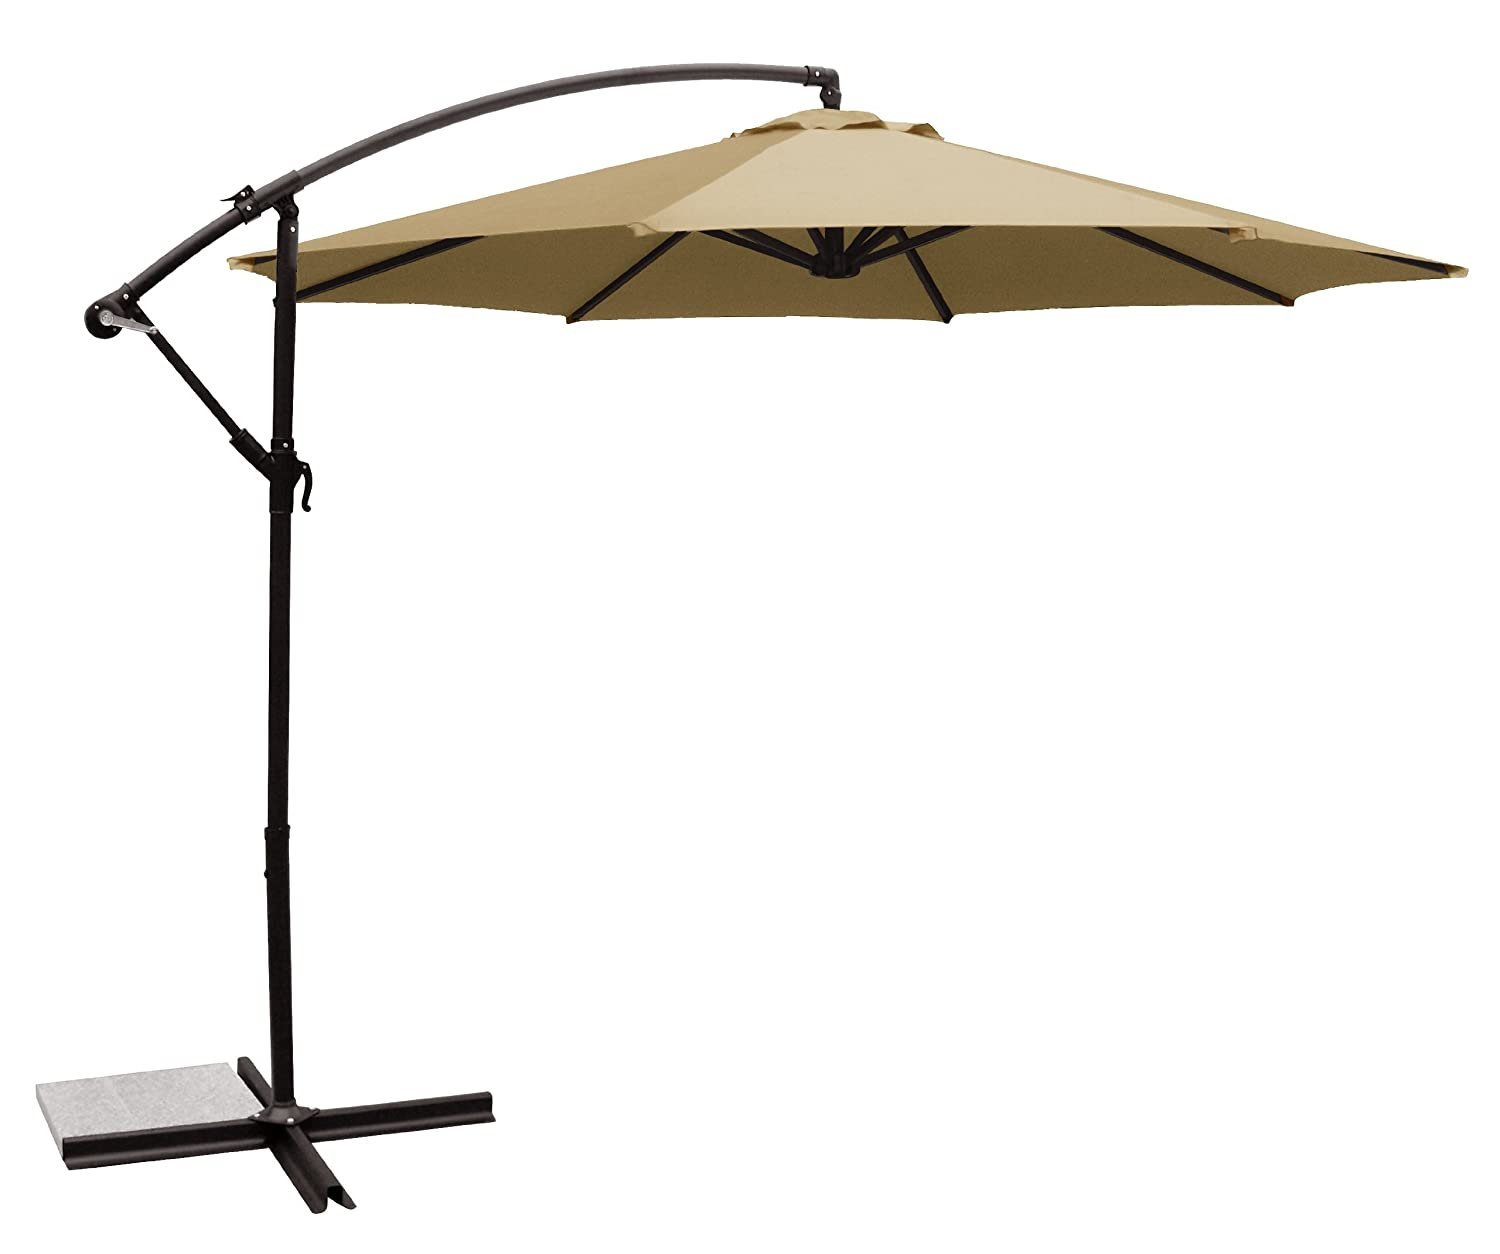 offset umbrella outdoor hu market red itm umbrellas patio hanging